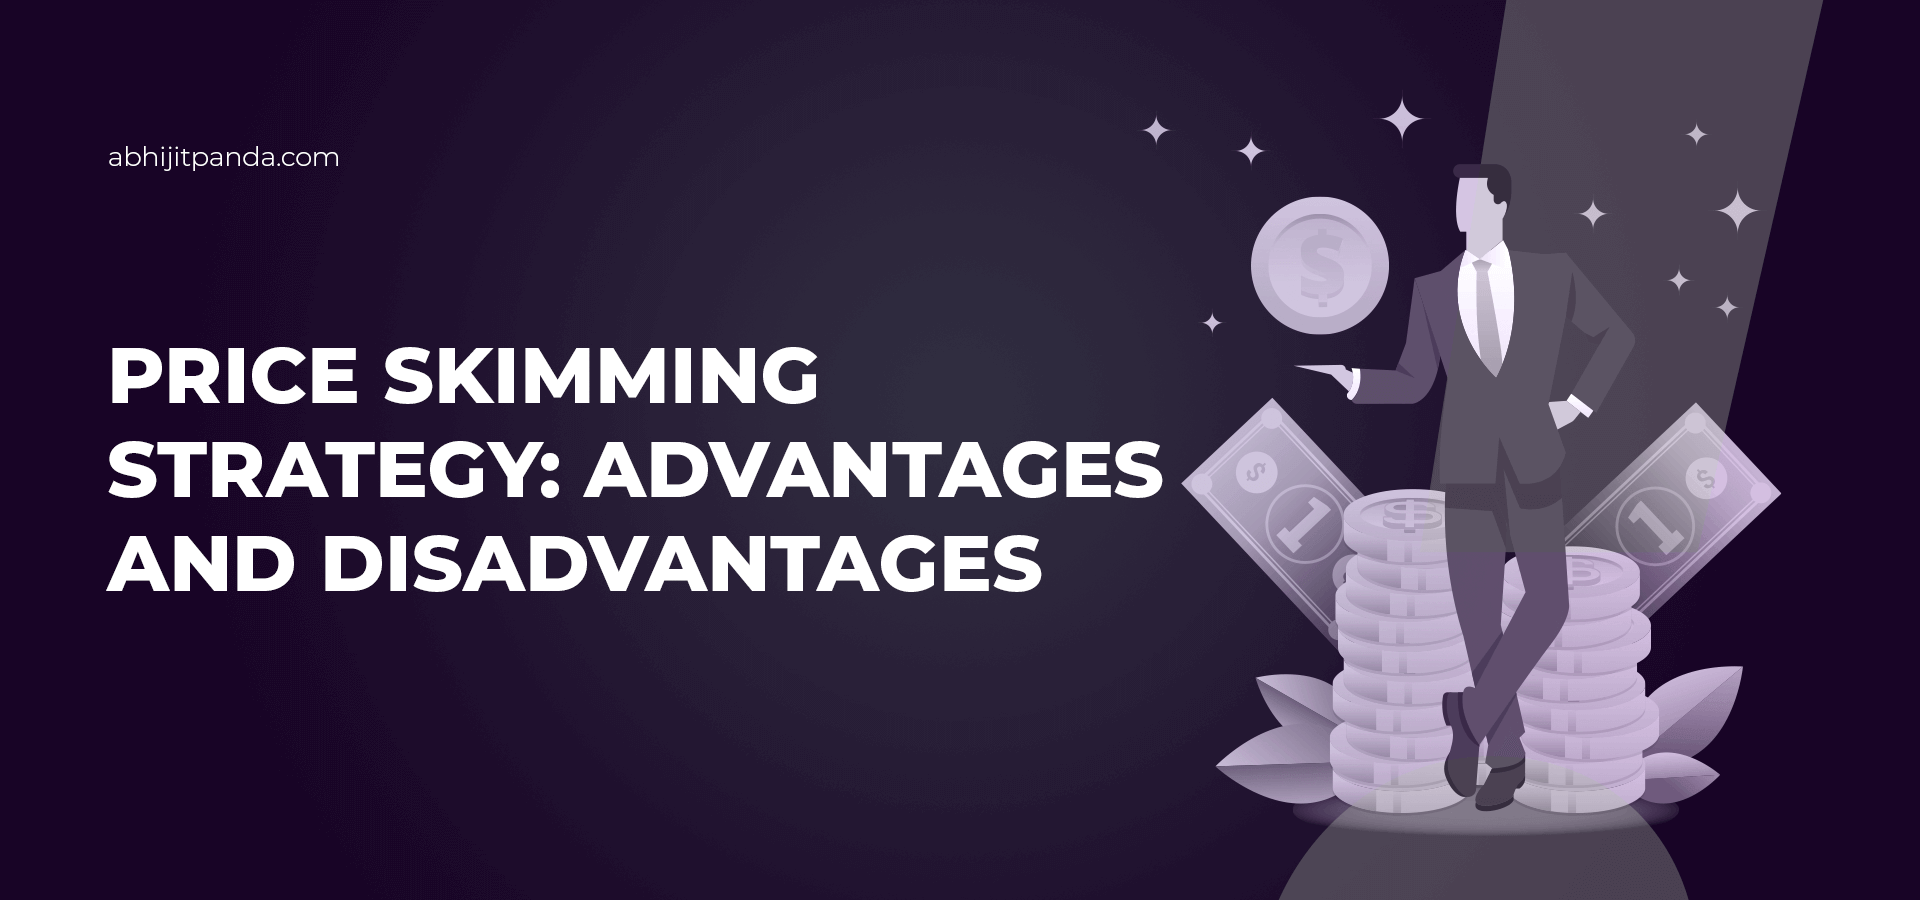 Price Skimming Strategy Advantages and Disadvantages